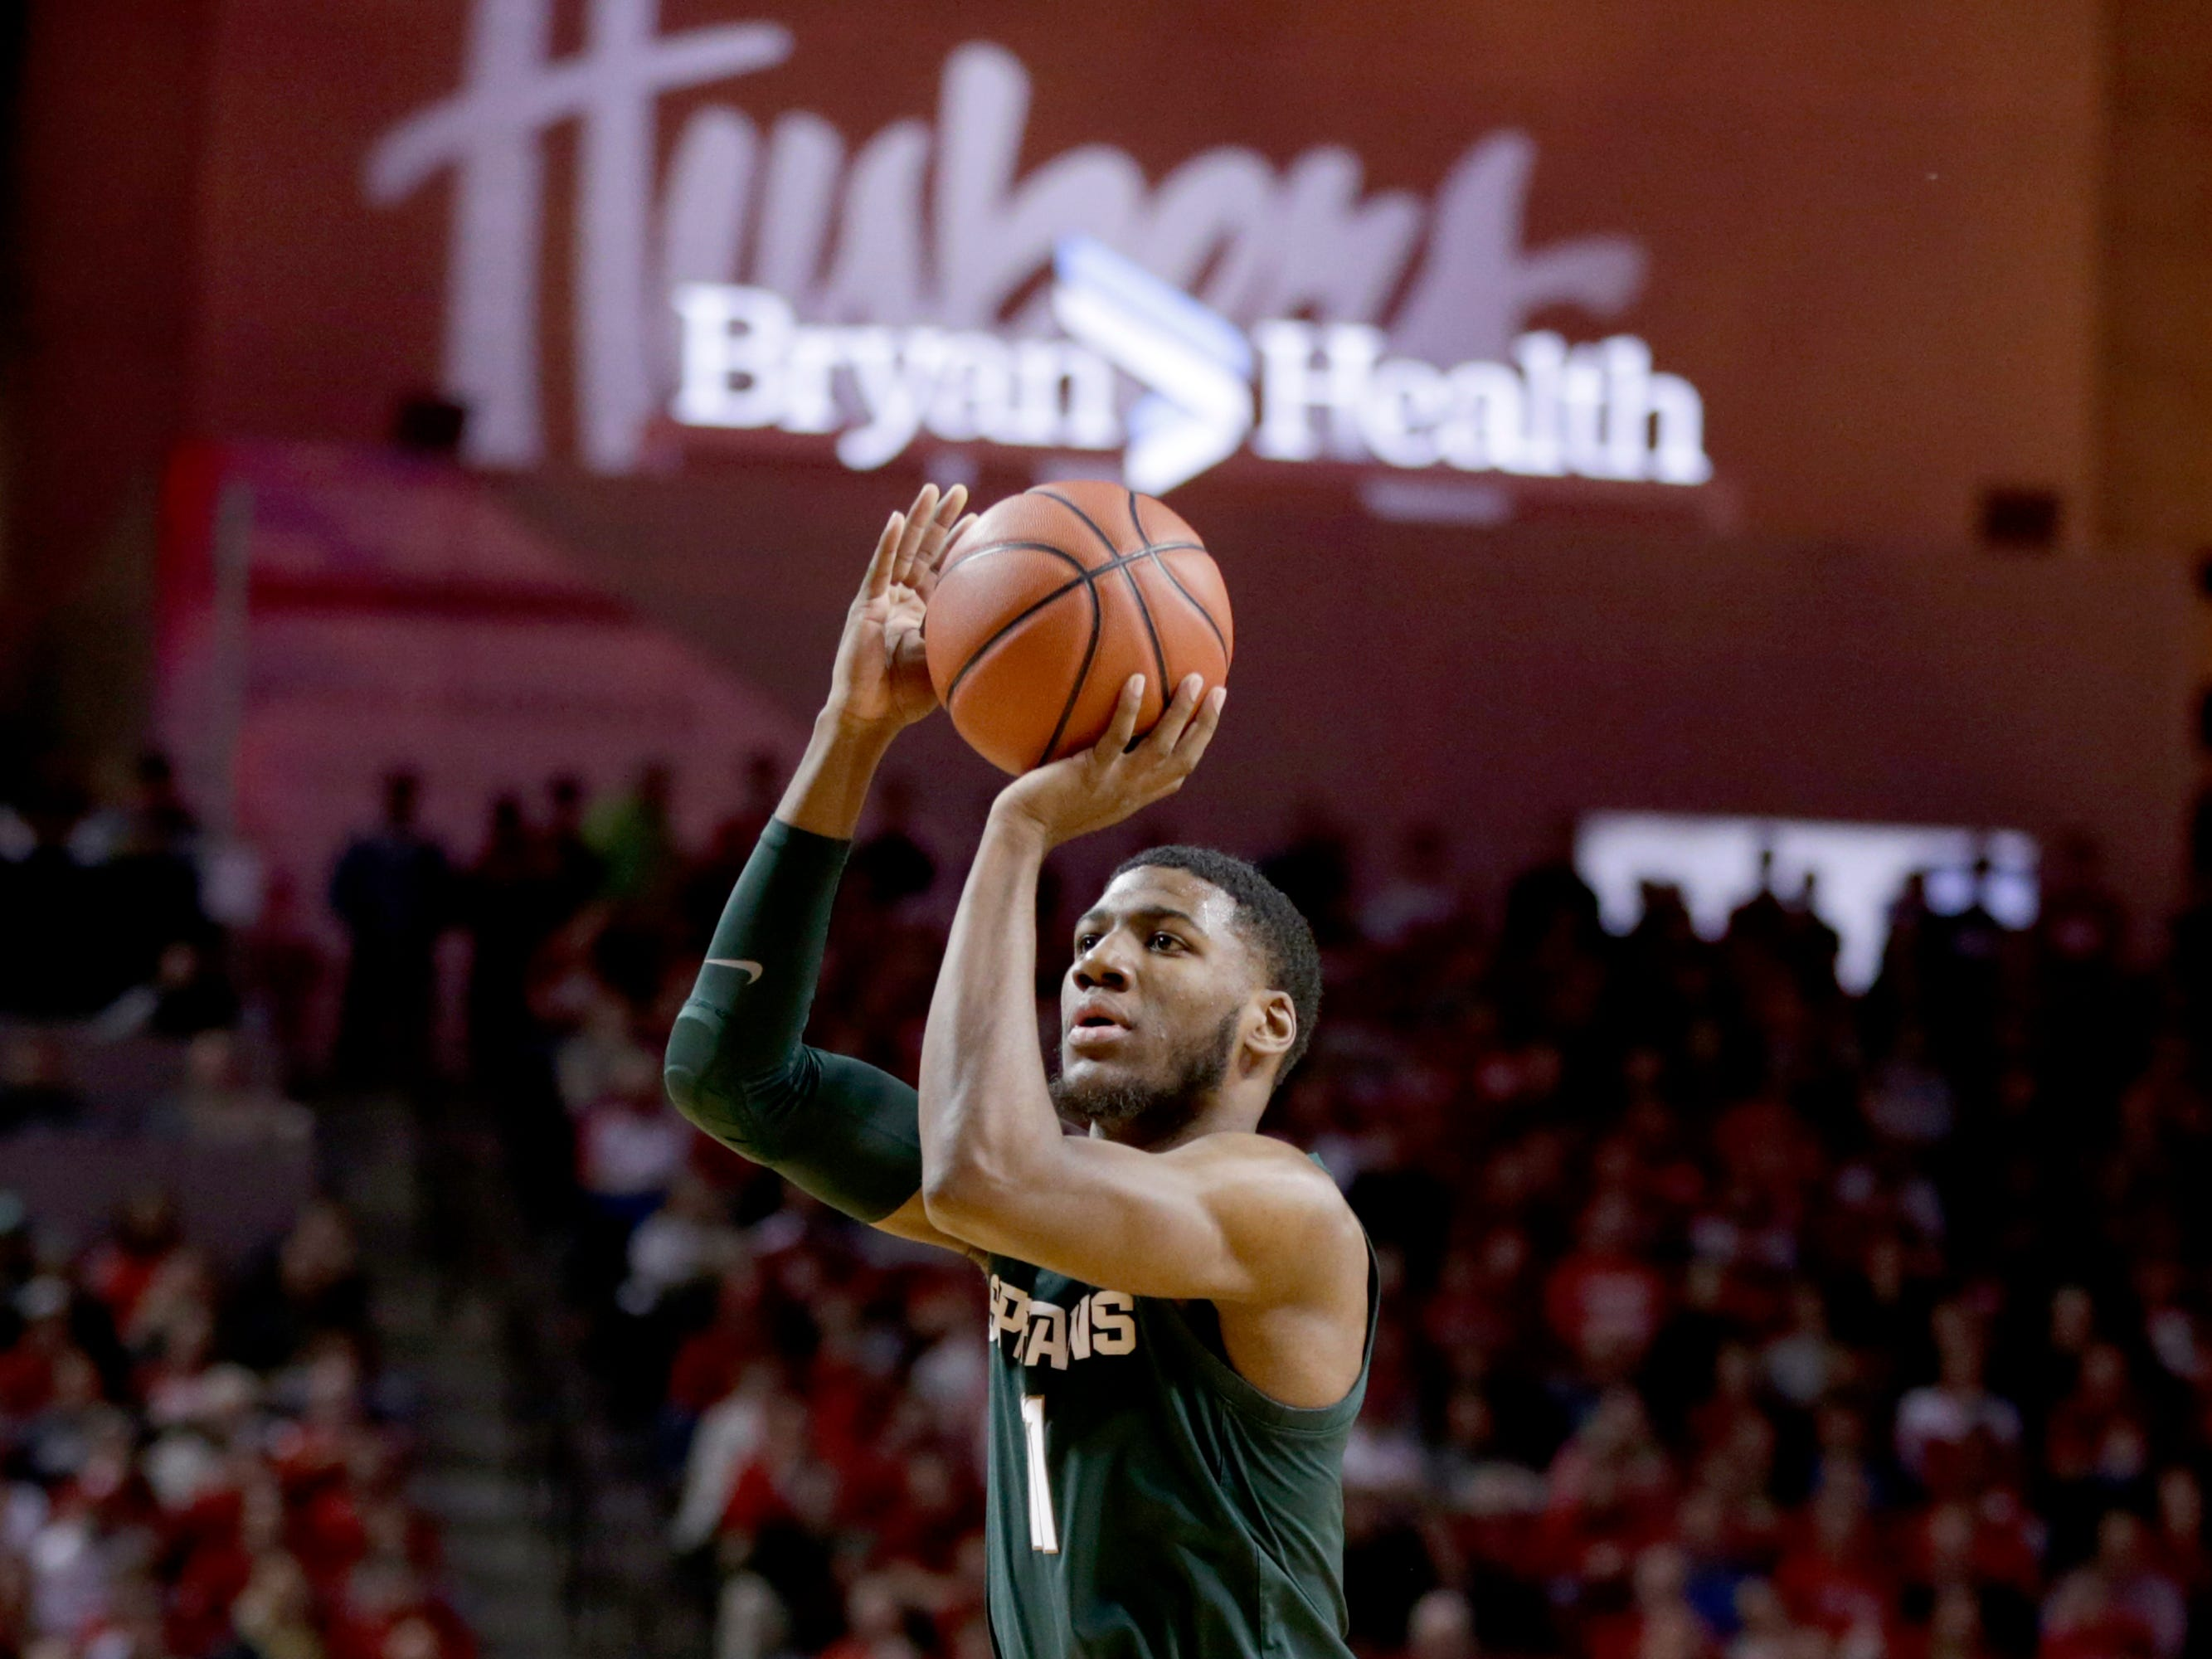 Michigan State's Aaron Henry (11) shoots during the second half of an NCAA college basketball game against Nebraska in Lincoln, Neb., Thursday, Jan. 17, 2019. Michigan State won 70-64.